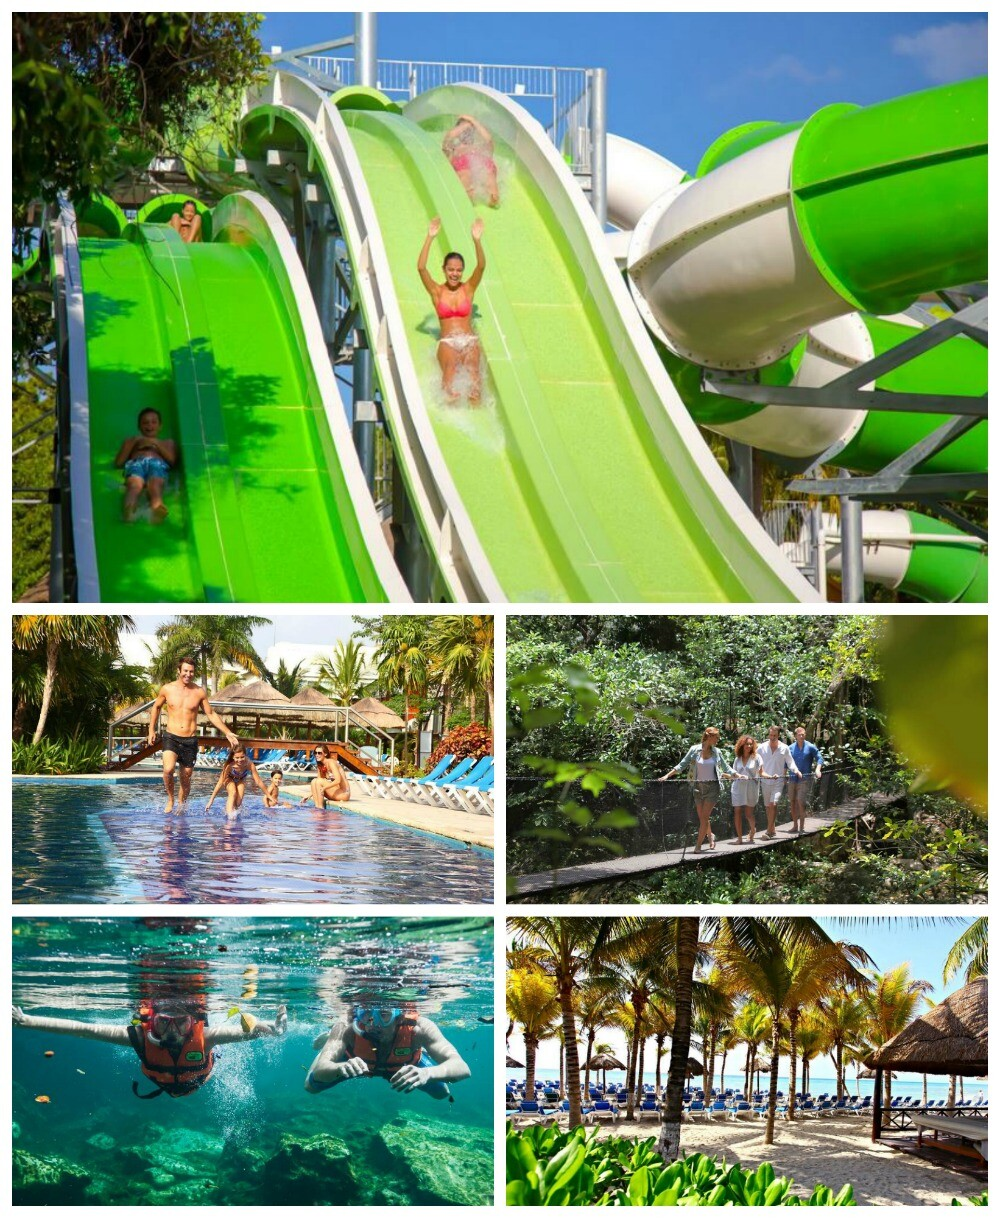 Sandos Caracol Eco Resort activities